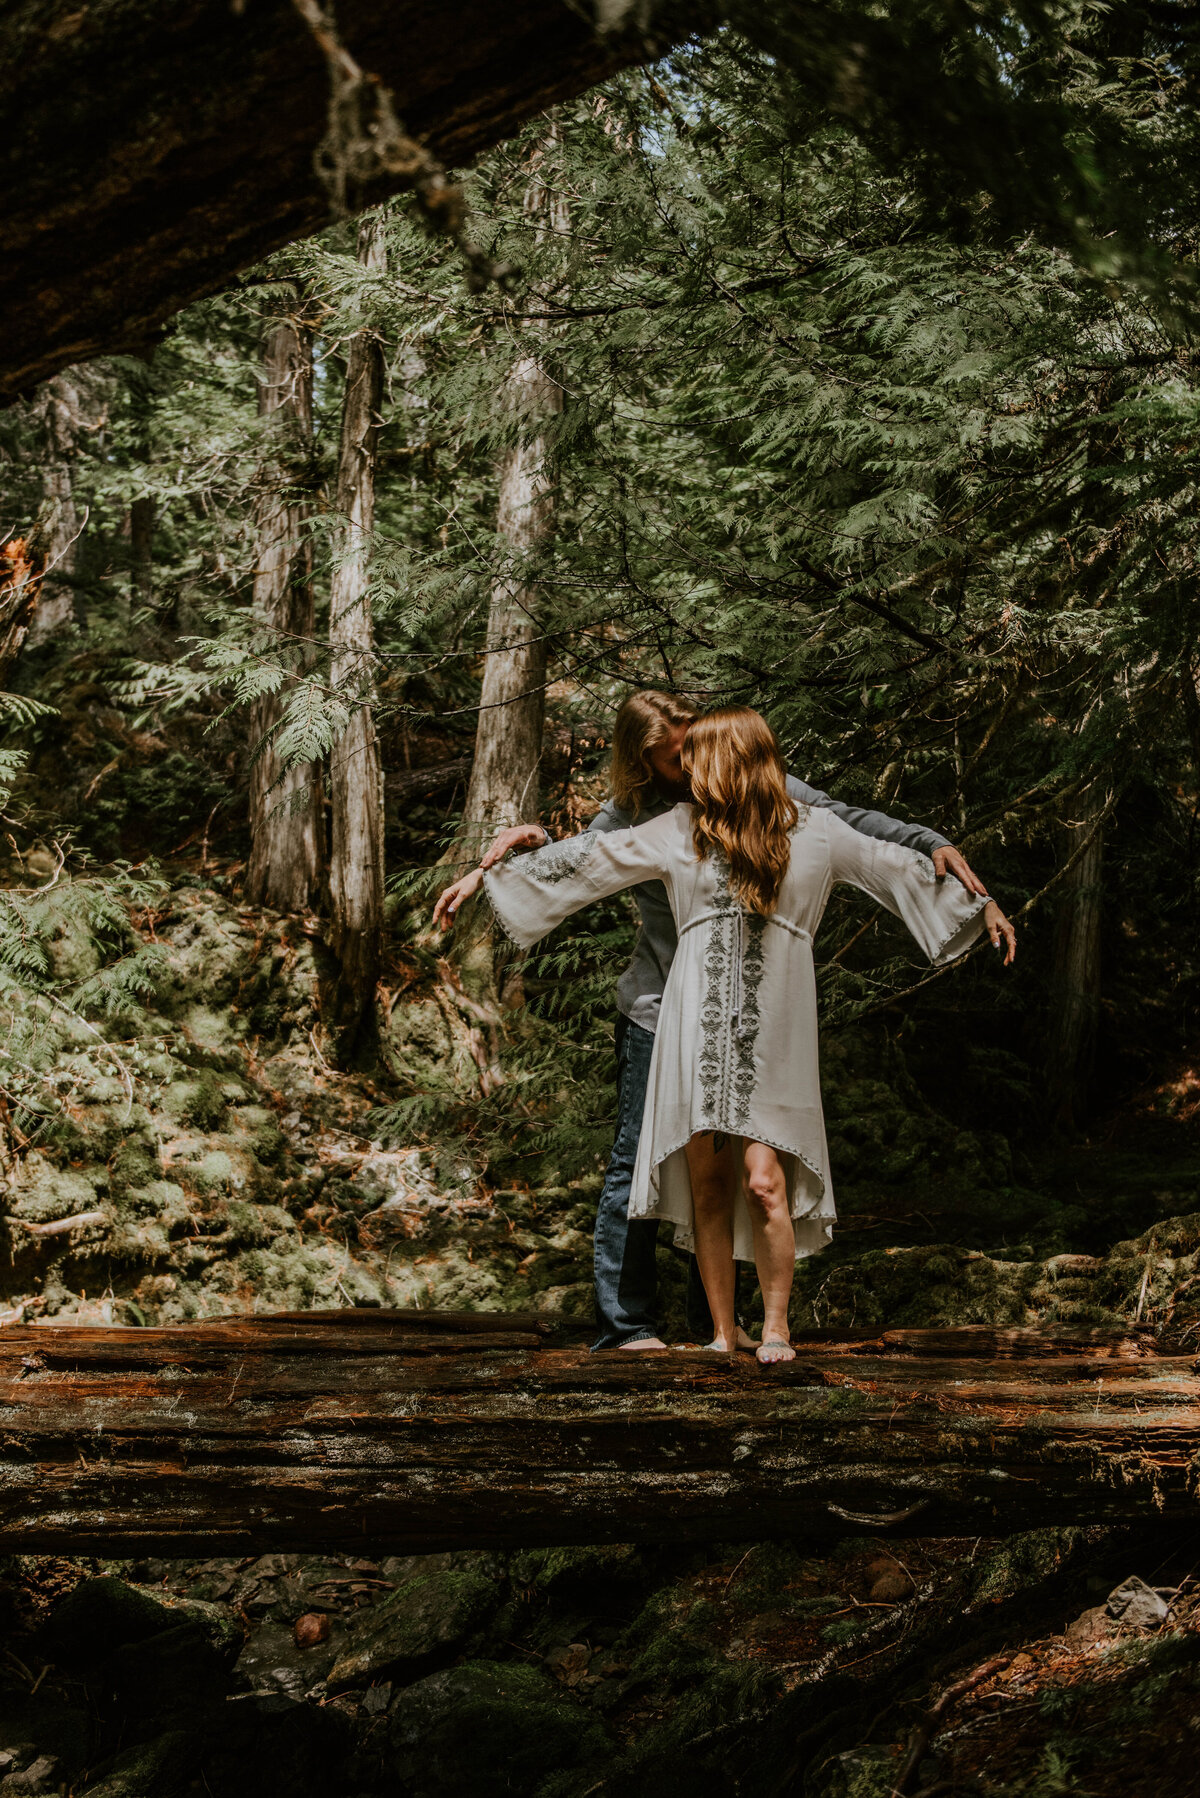 sahalie-falls-summer-oregon-photoshoot-adventure-photographer-bend-couple-forest-outfits-elopement-wedding7837